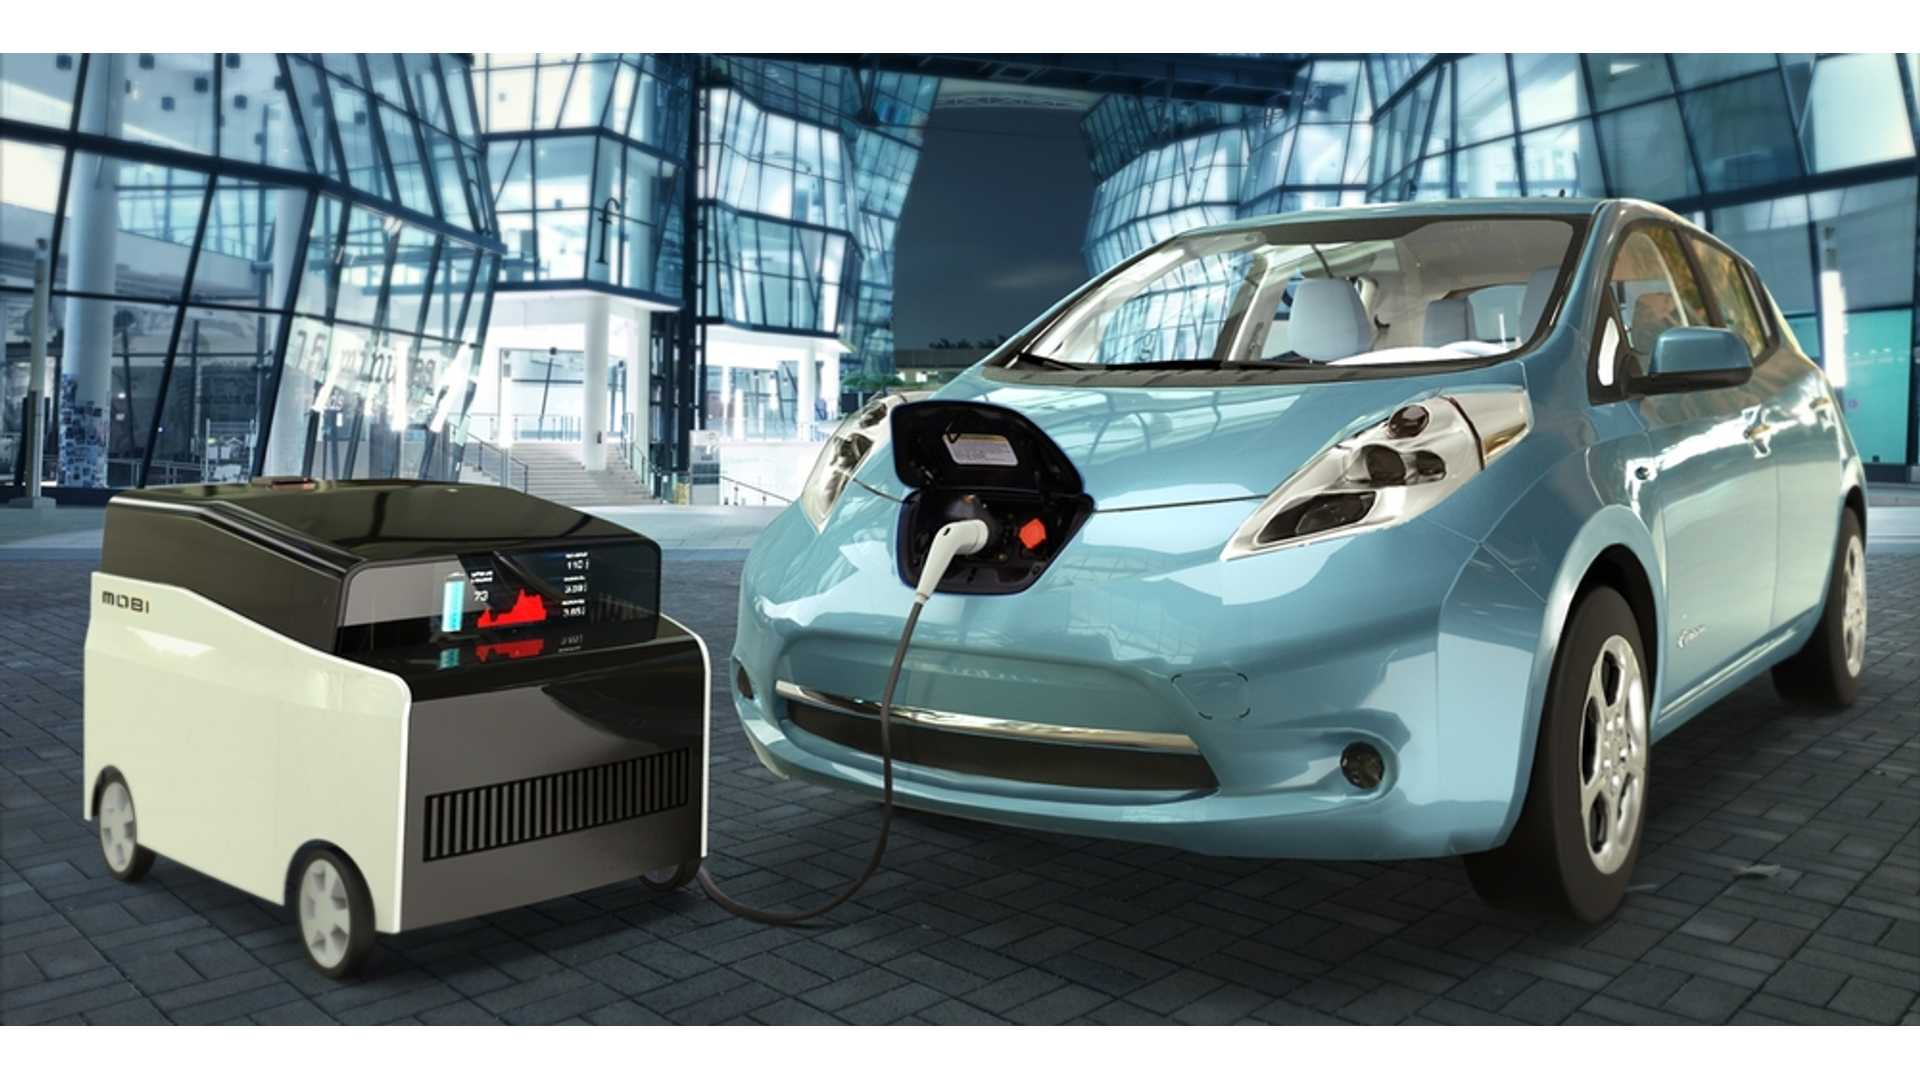 Nissan Leaf Charger >> Freewire Mobi Charger Puts Nissan Leaf Batteries To Use In